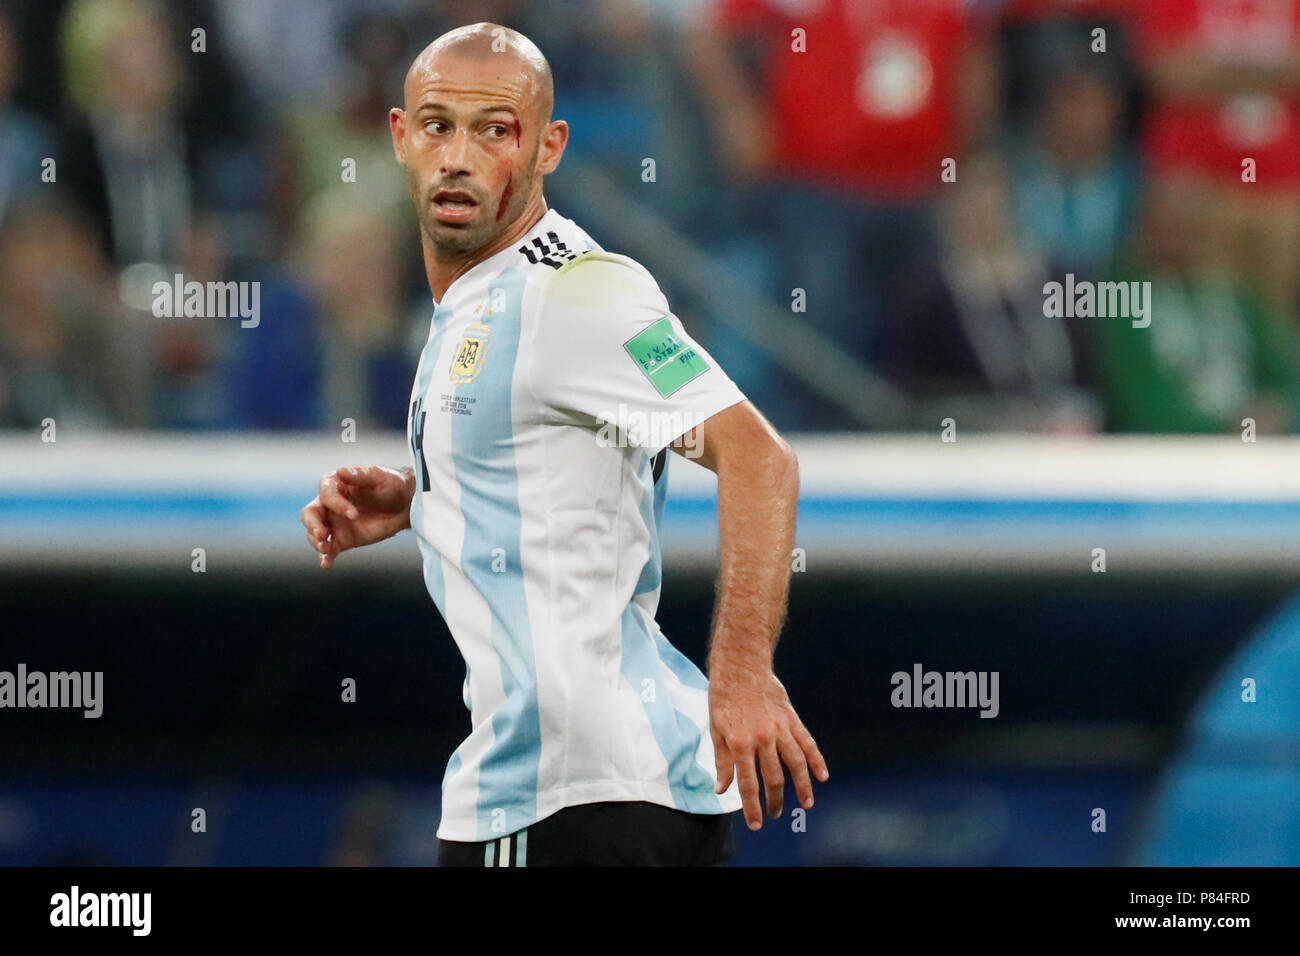 f01b7c707d8 Argentina National Team Stock Photos   Argentina National Team Stock ...